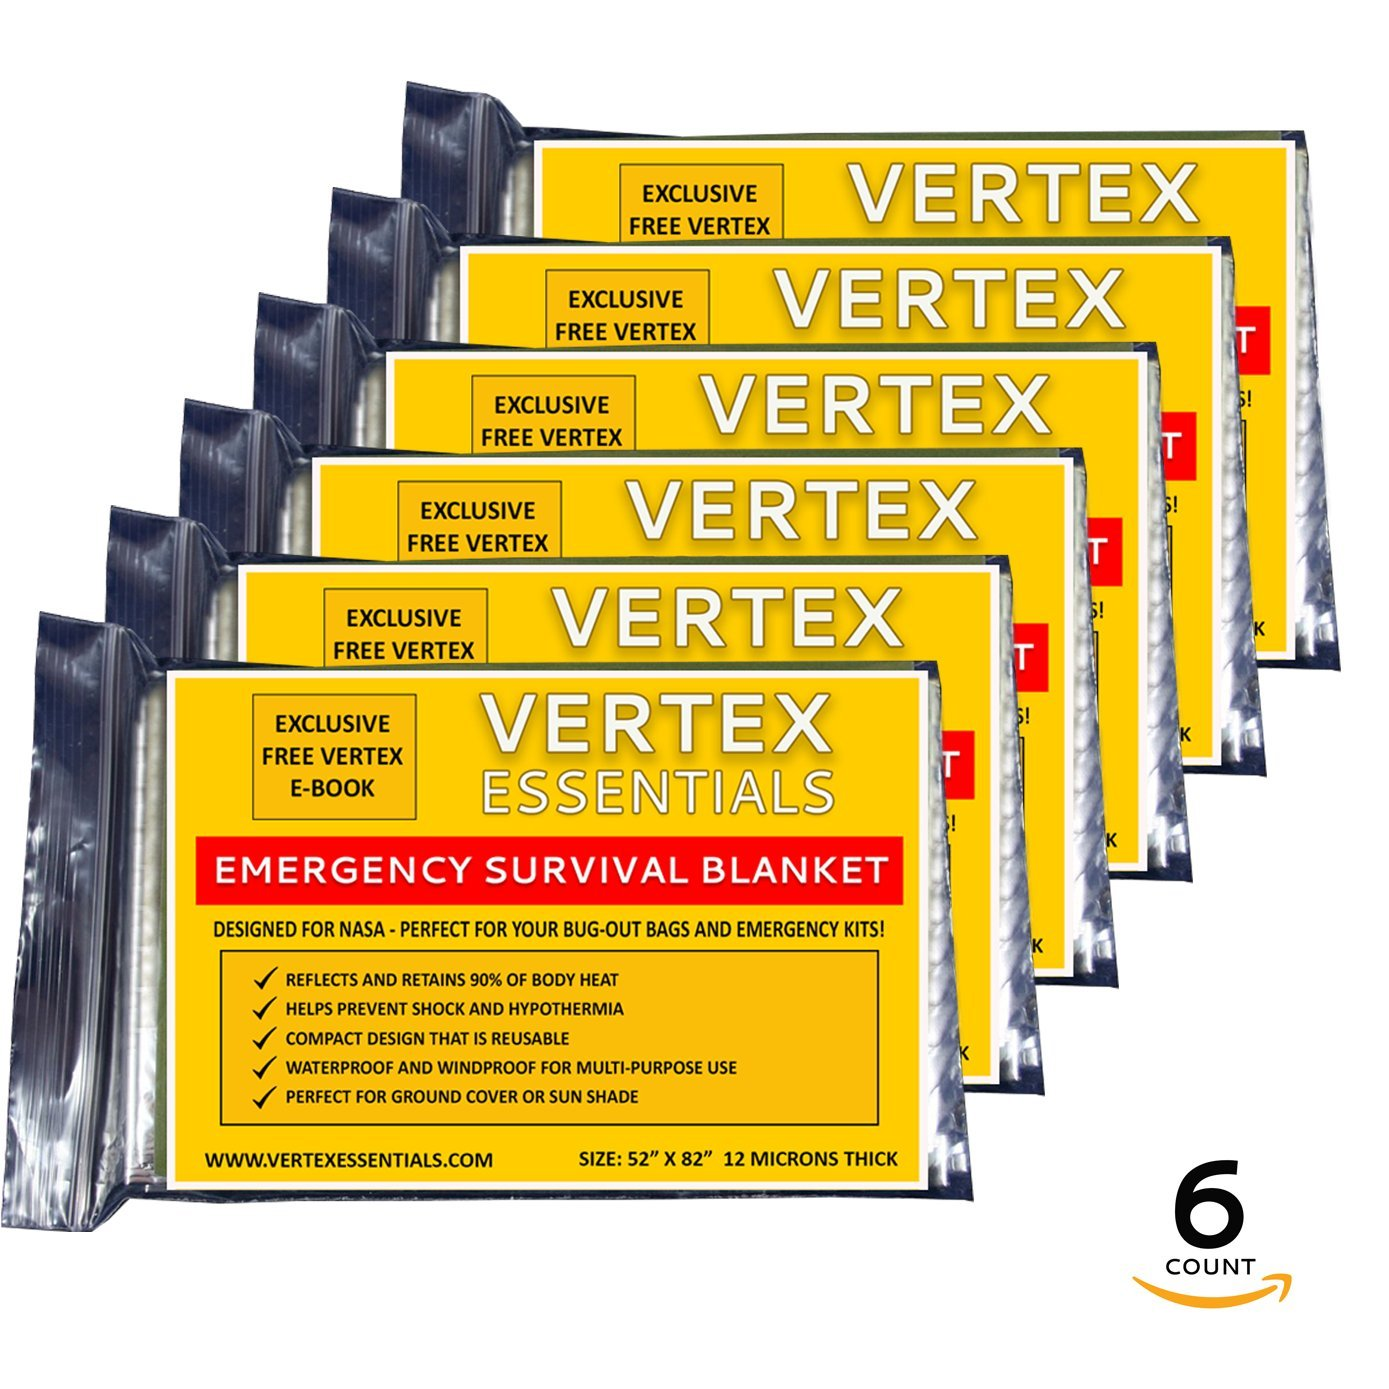 Emergency Blanket (6-Pack), Gold 52'' x 82''. Designed for NASA with up to 90% Heat Retention. Waterproof, Mylar Thermal Blankets for Backpacking, First Aid Kit, Bug Out Bag